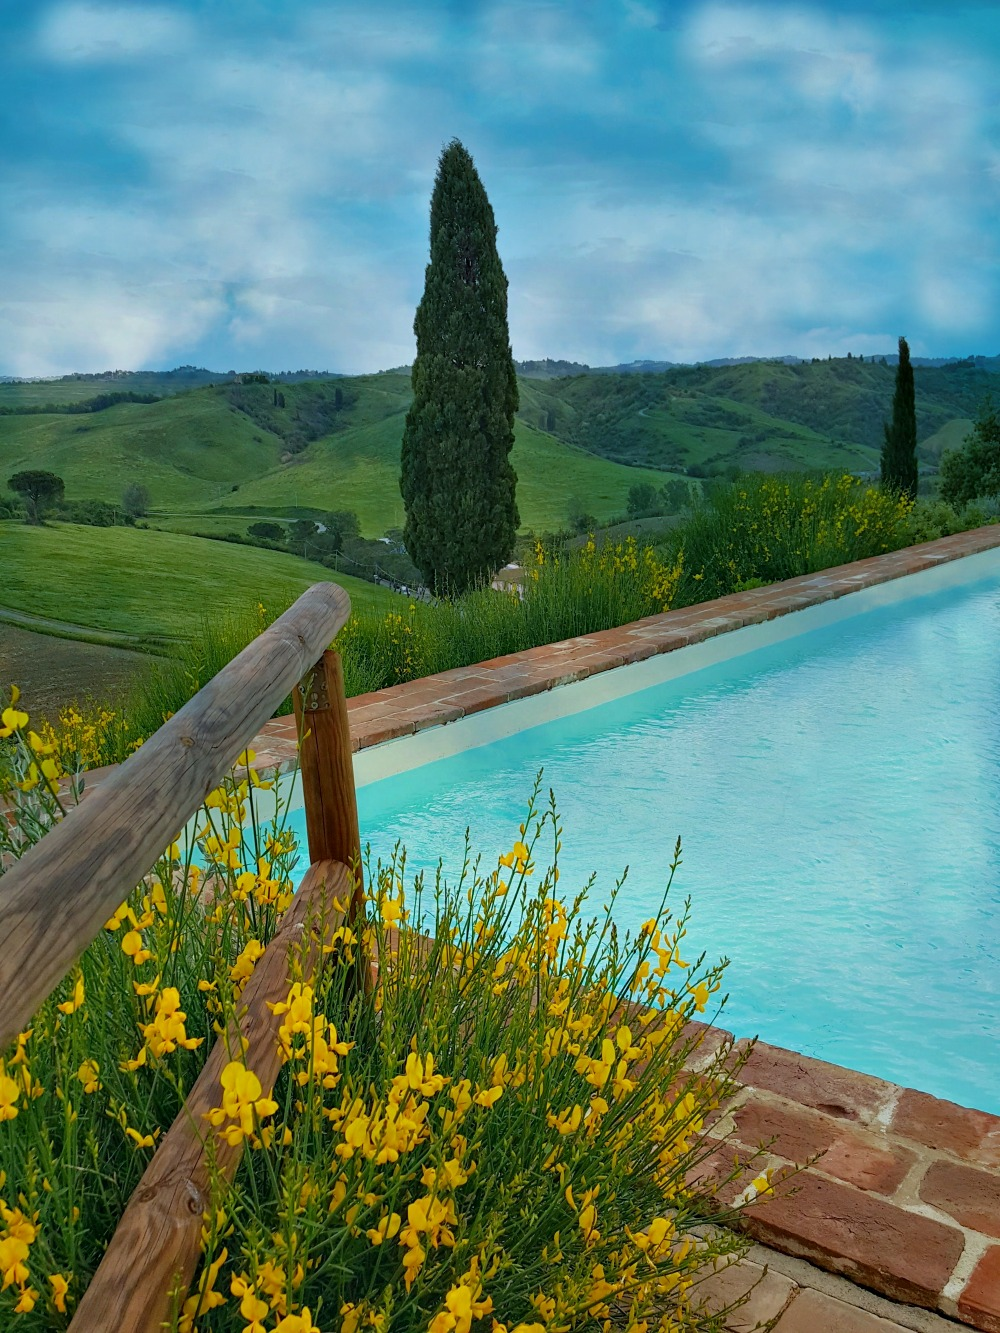 Podere Benintendi hotel's ground located in the heart of Tuscany.